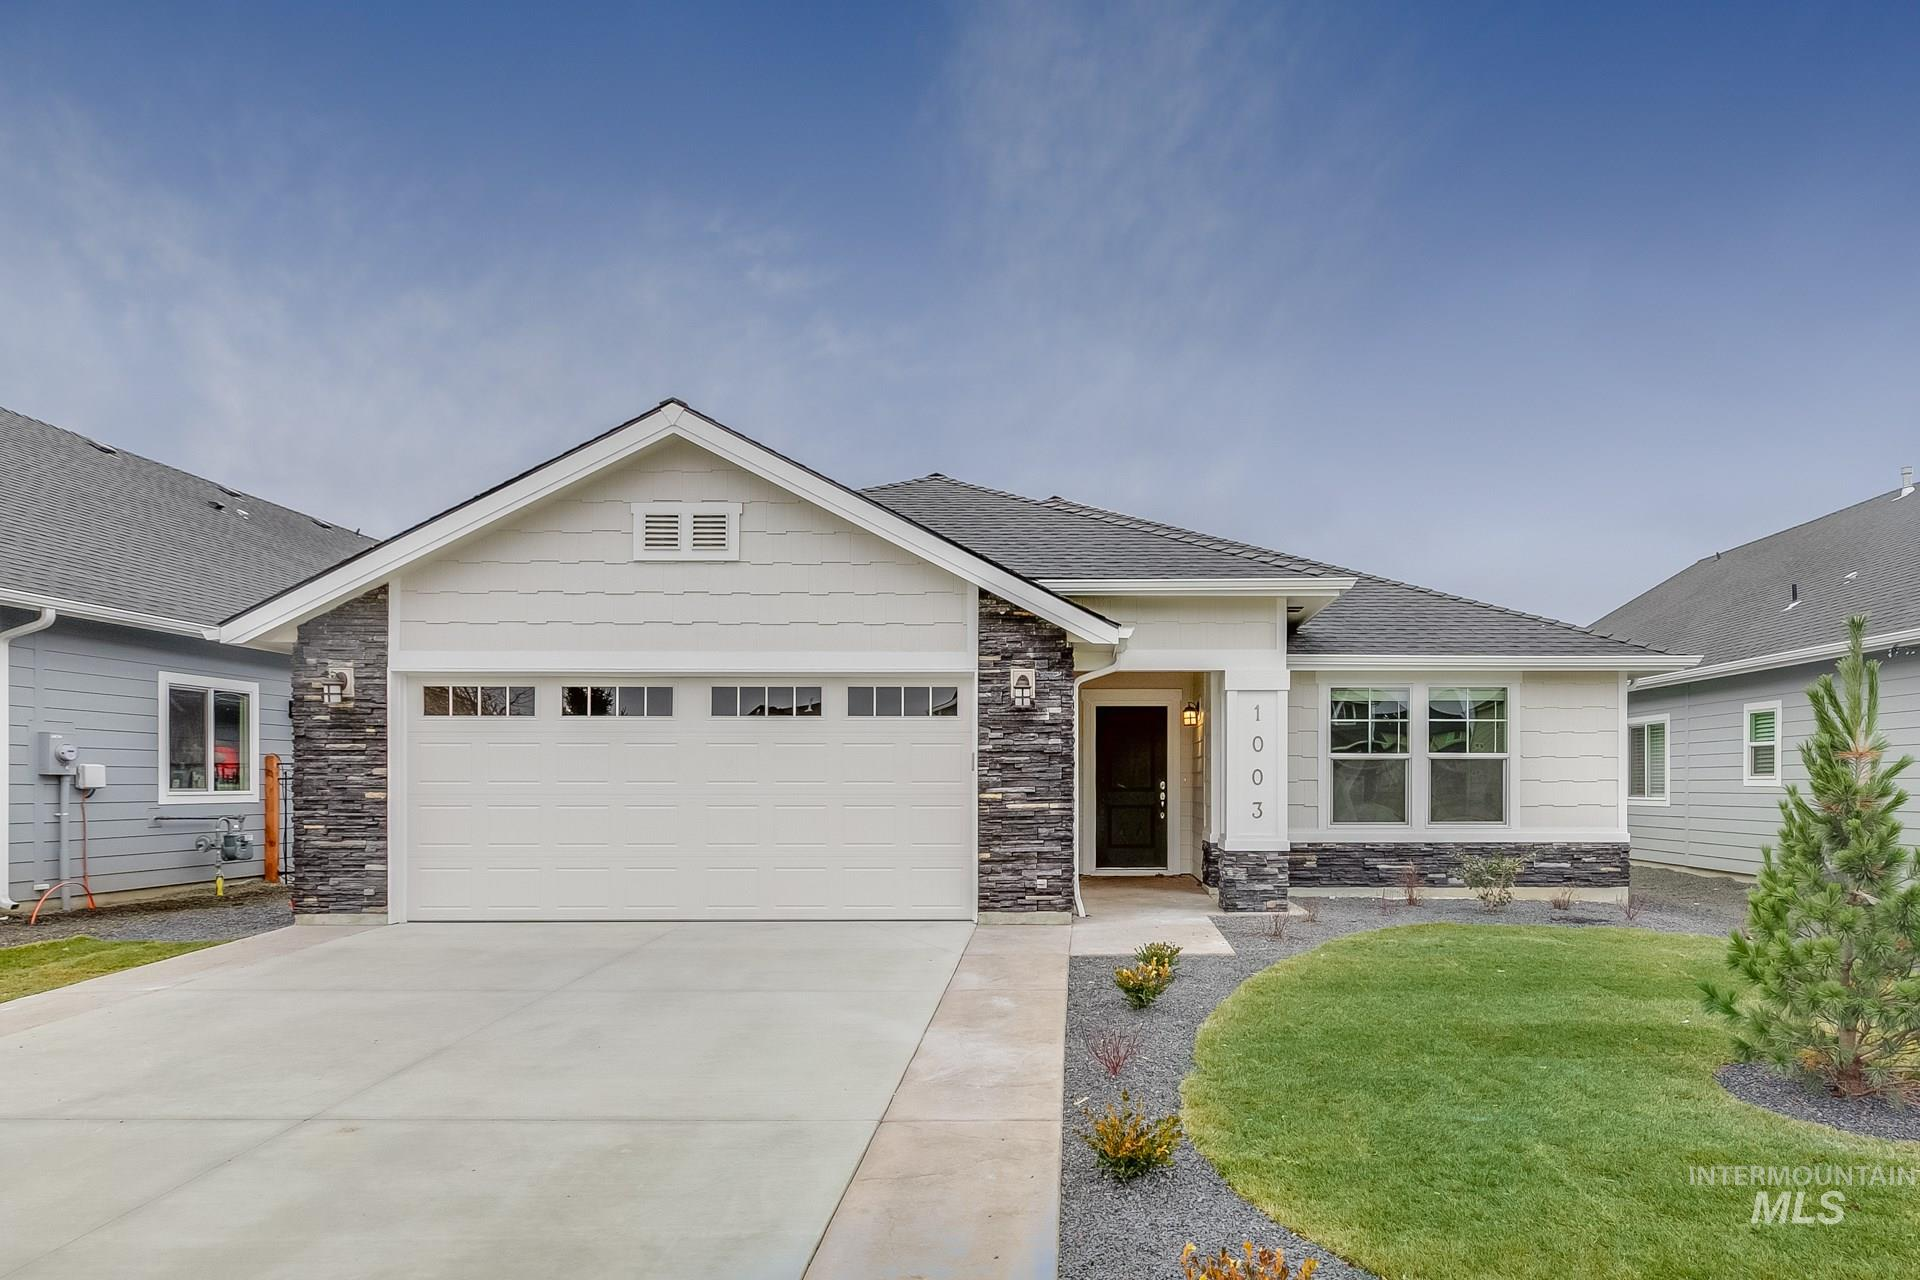 Want to tour this home NOW? Get on-demand access with TOUR NOW. Simply visit the home, follow the directions to access, and tour instantly.   The Bennett 1694 is a single level dream home just waiting for you! Enjoy a spacious living room, dining and kitchen or spill out onto your large back patio. Price includes stainless steel appliances, granite kitchen counter, dual vanity, engineered vinyl plank flooring,  and more. Photos similar. RCE-923.